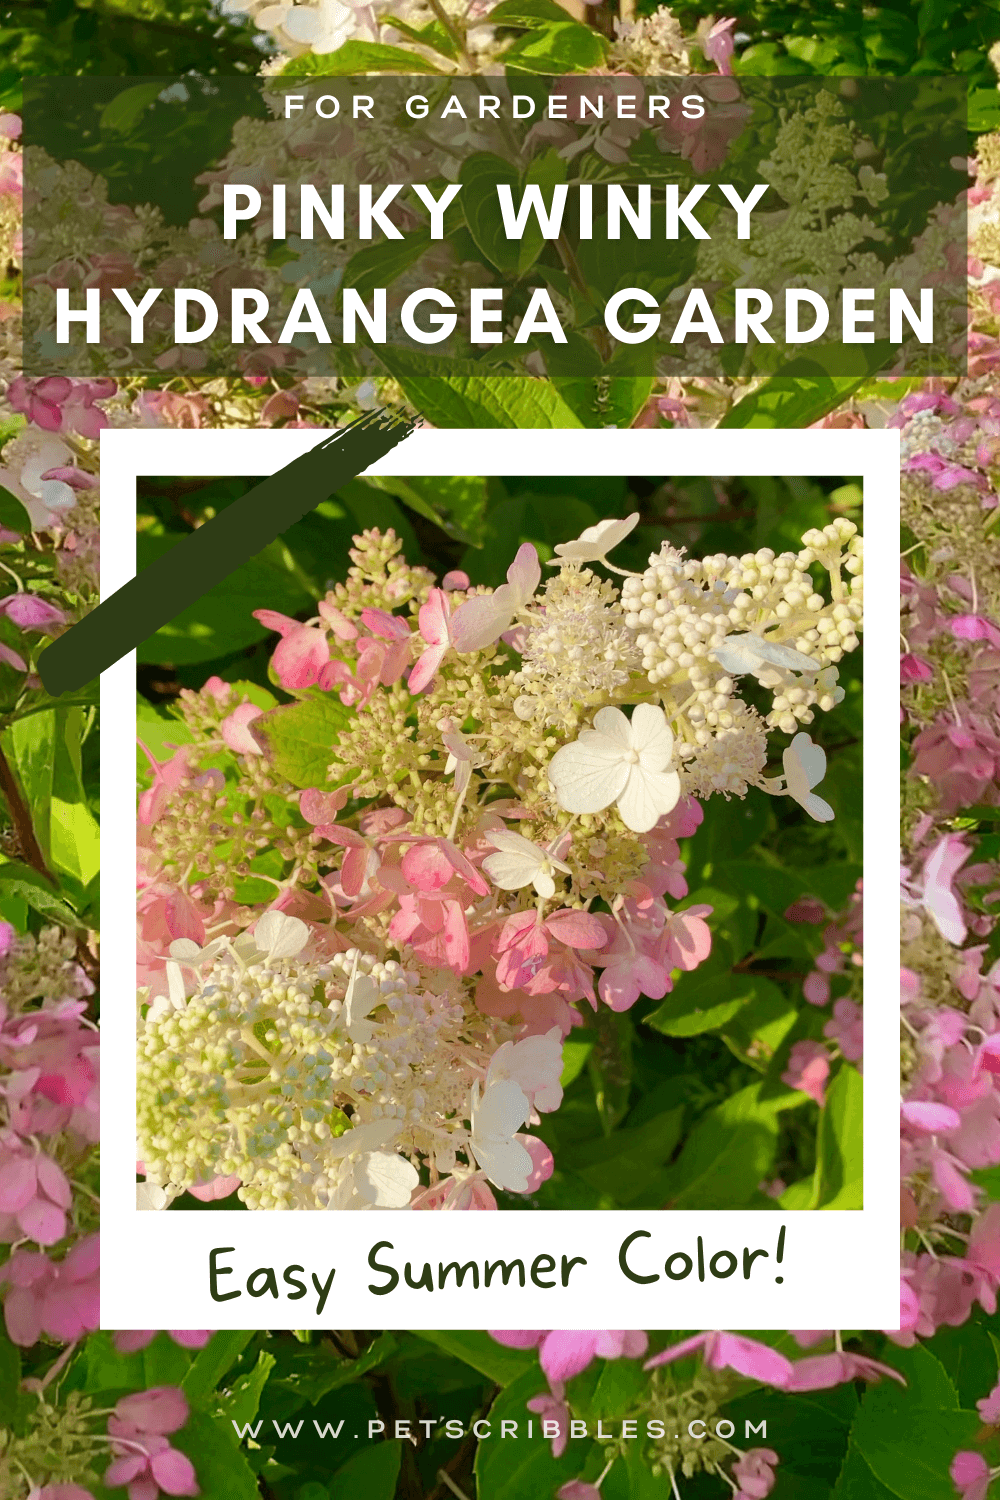 Enjoy this detailed Summer garden tour of my Pinky Winky Hydrangea Garden. In addition to the Pinky Winky Hydrangeas, this garden features a Muskogee Crepe Myrtle, Fothergilla, evergreens and flowering perennials like Geranium Rozanne, Geum and Roses. Includes video! via @petscribbles